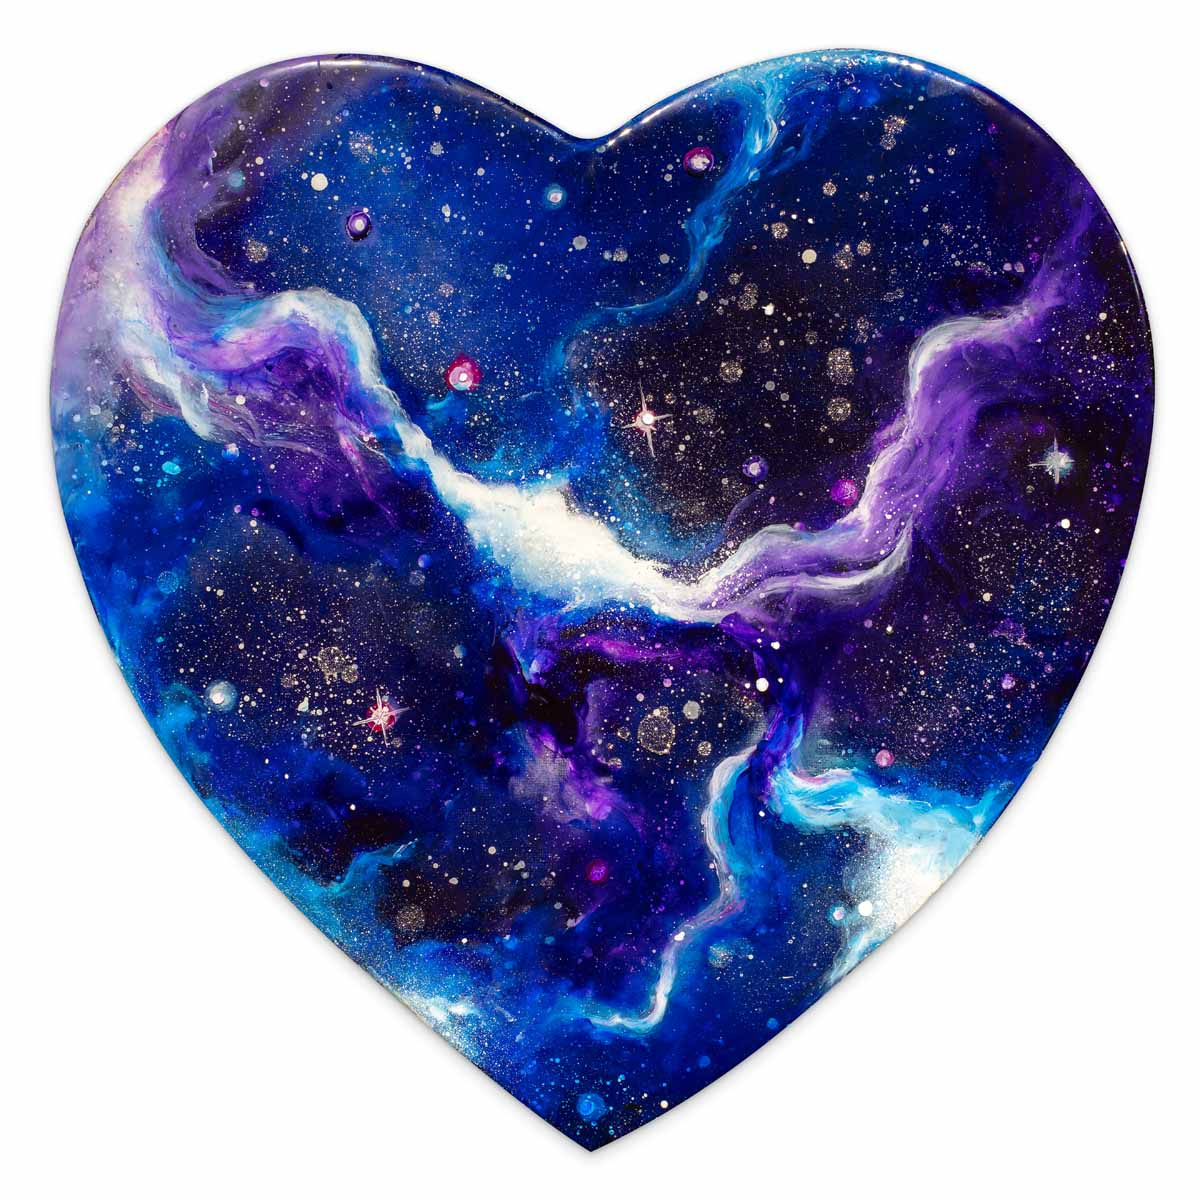 Love in The Galaxy - Original Becky Smith Original